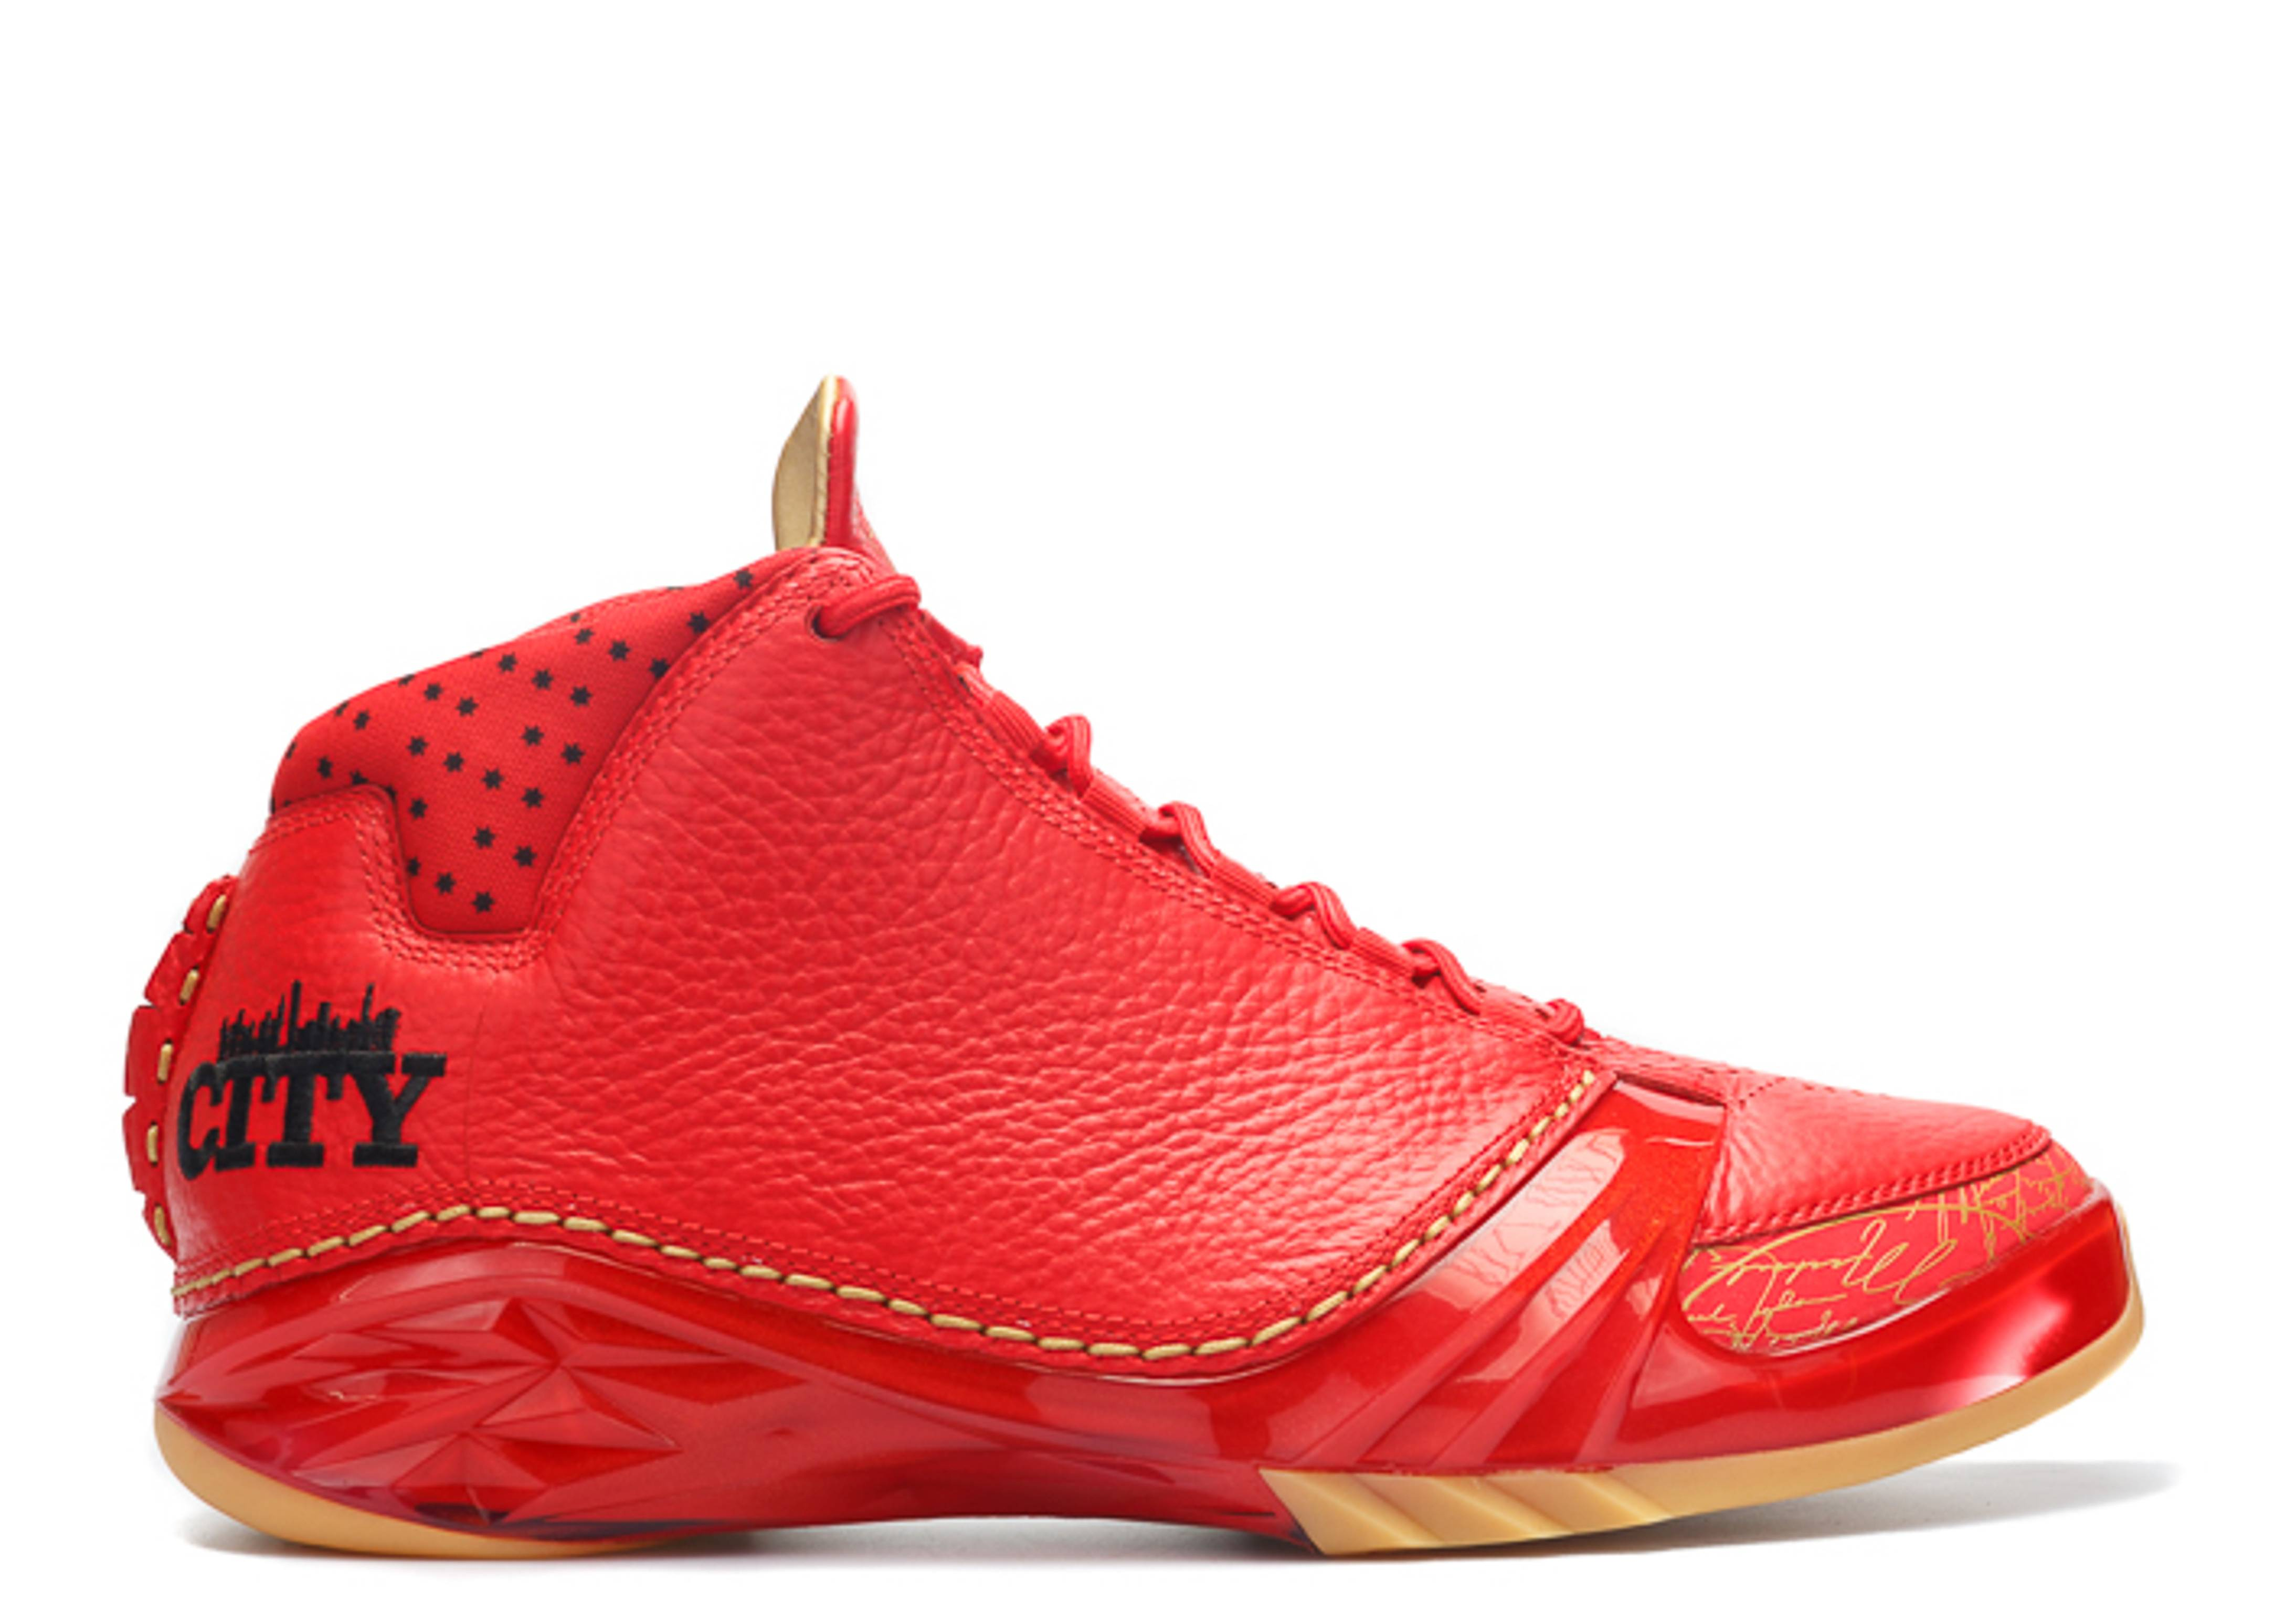 competitive price a9216 eaa2d ... nike chaussures pour hommes 2012 - air jordan 23 chicago